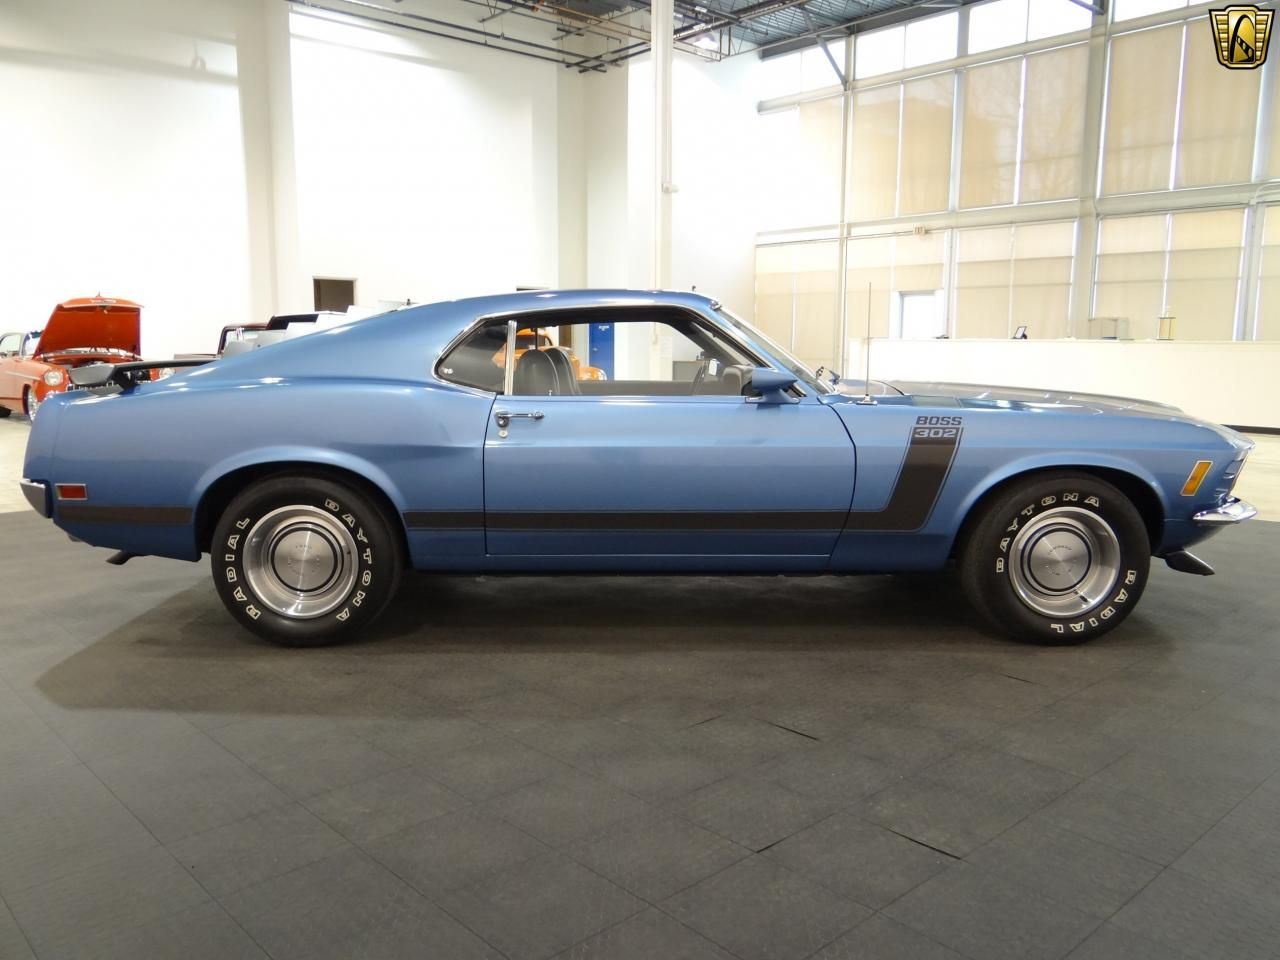 1970 ford mustang boss 302 302 cid v8 4 speed manual for sale indianapolis